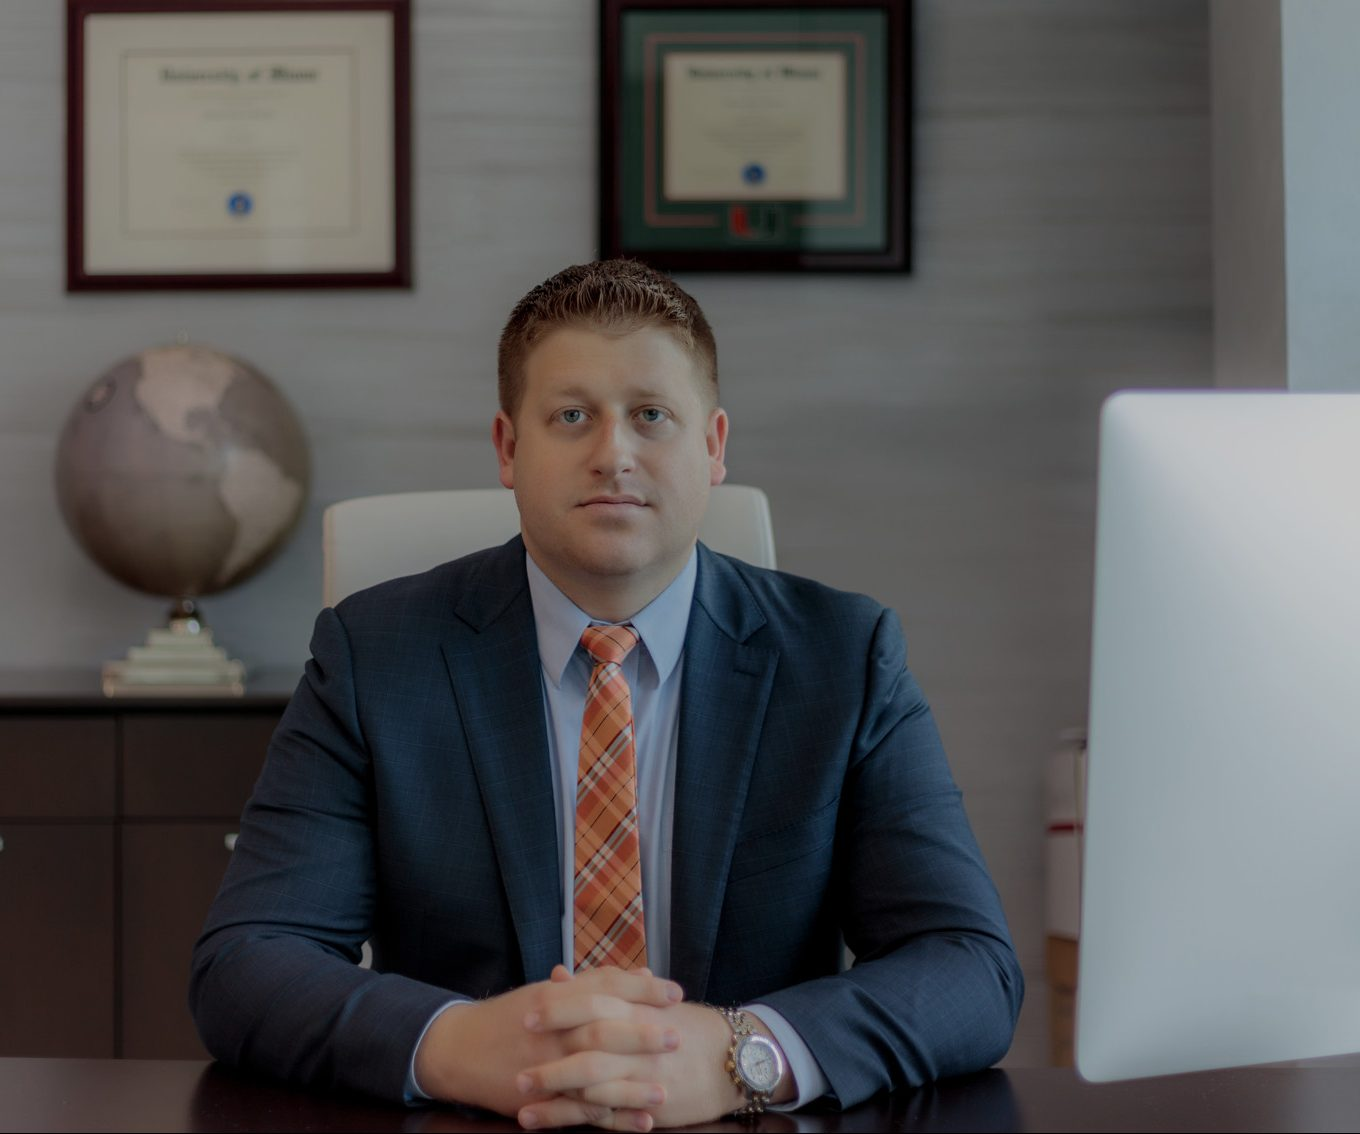 Criminal defense lawyer, Jordan Redavid